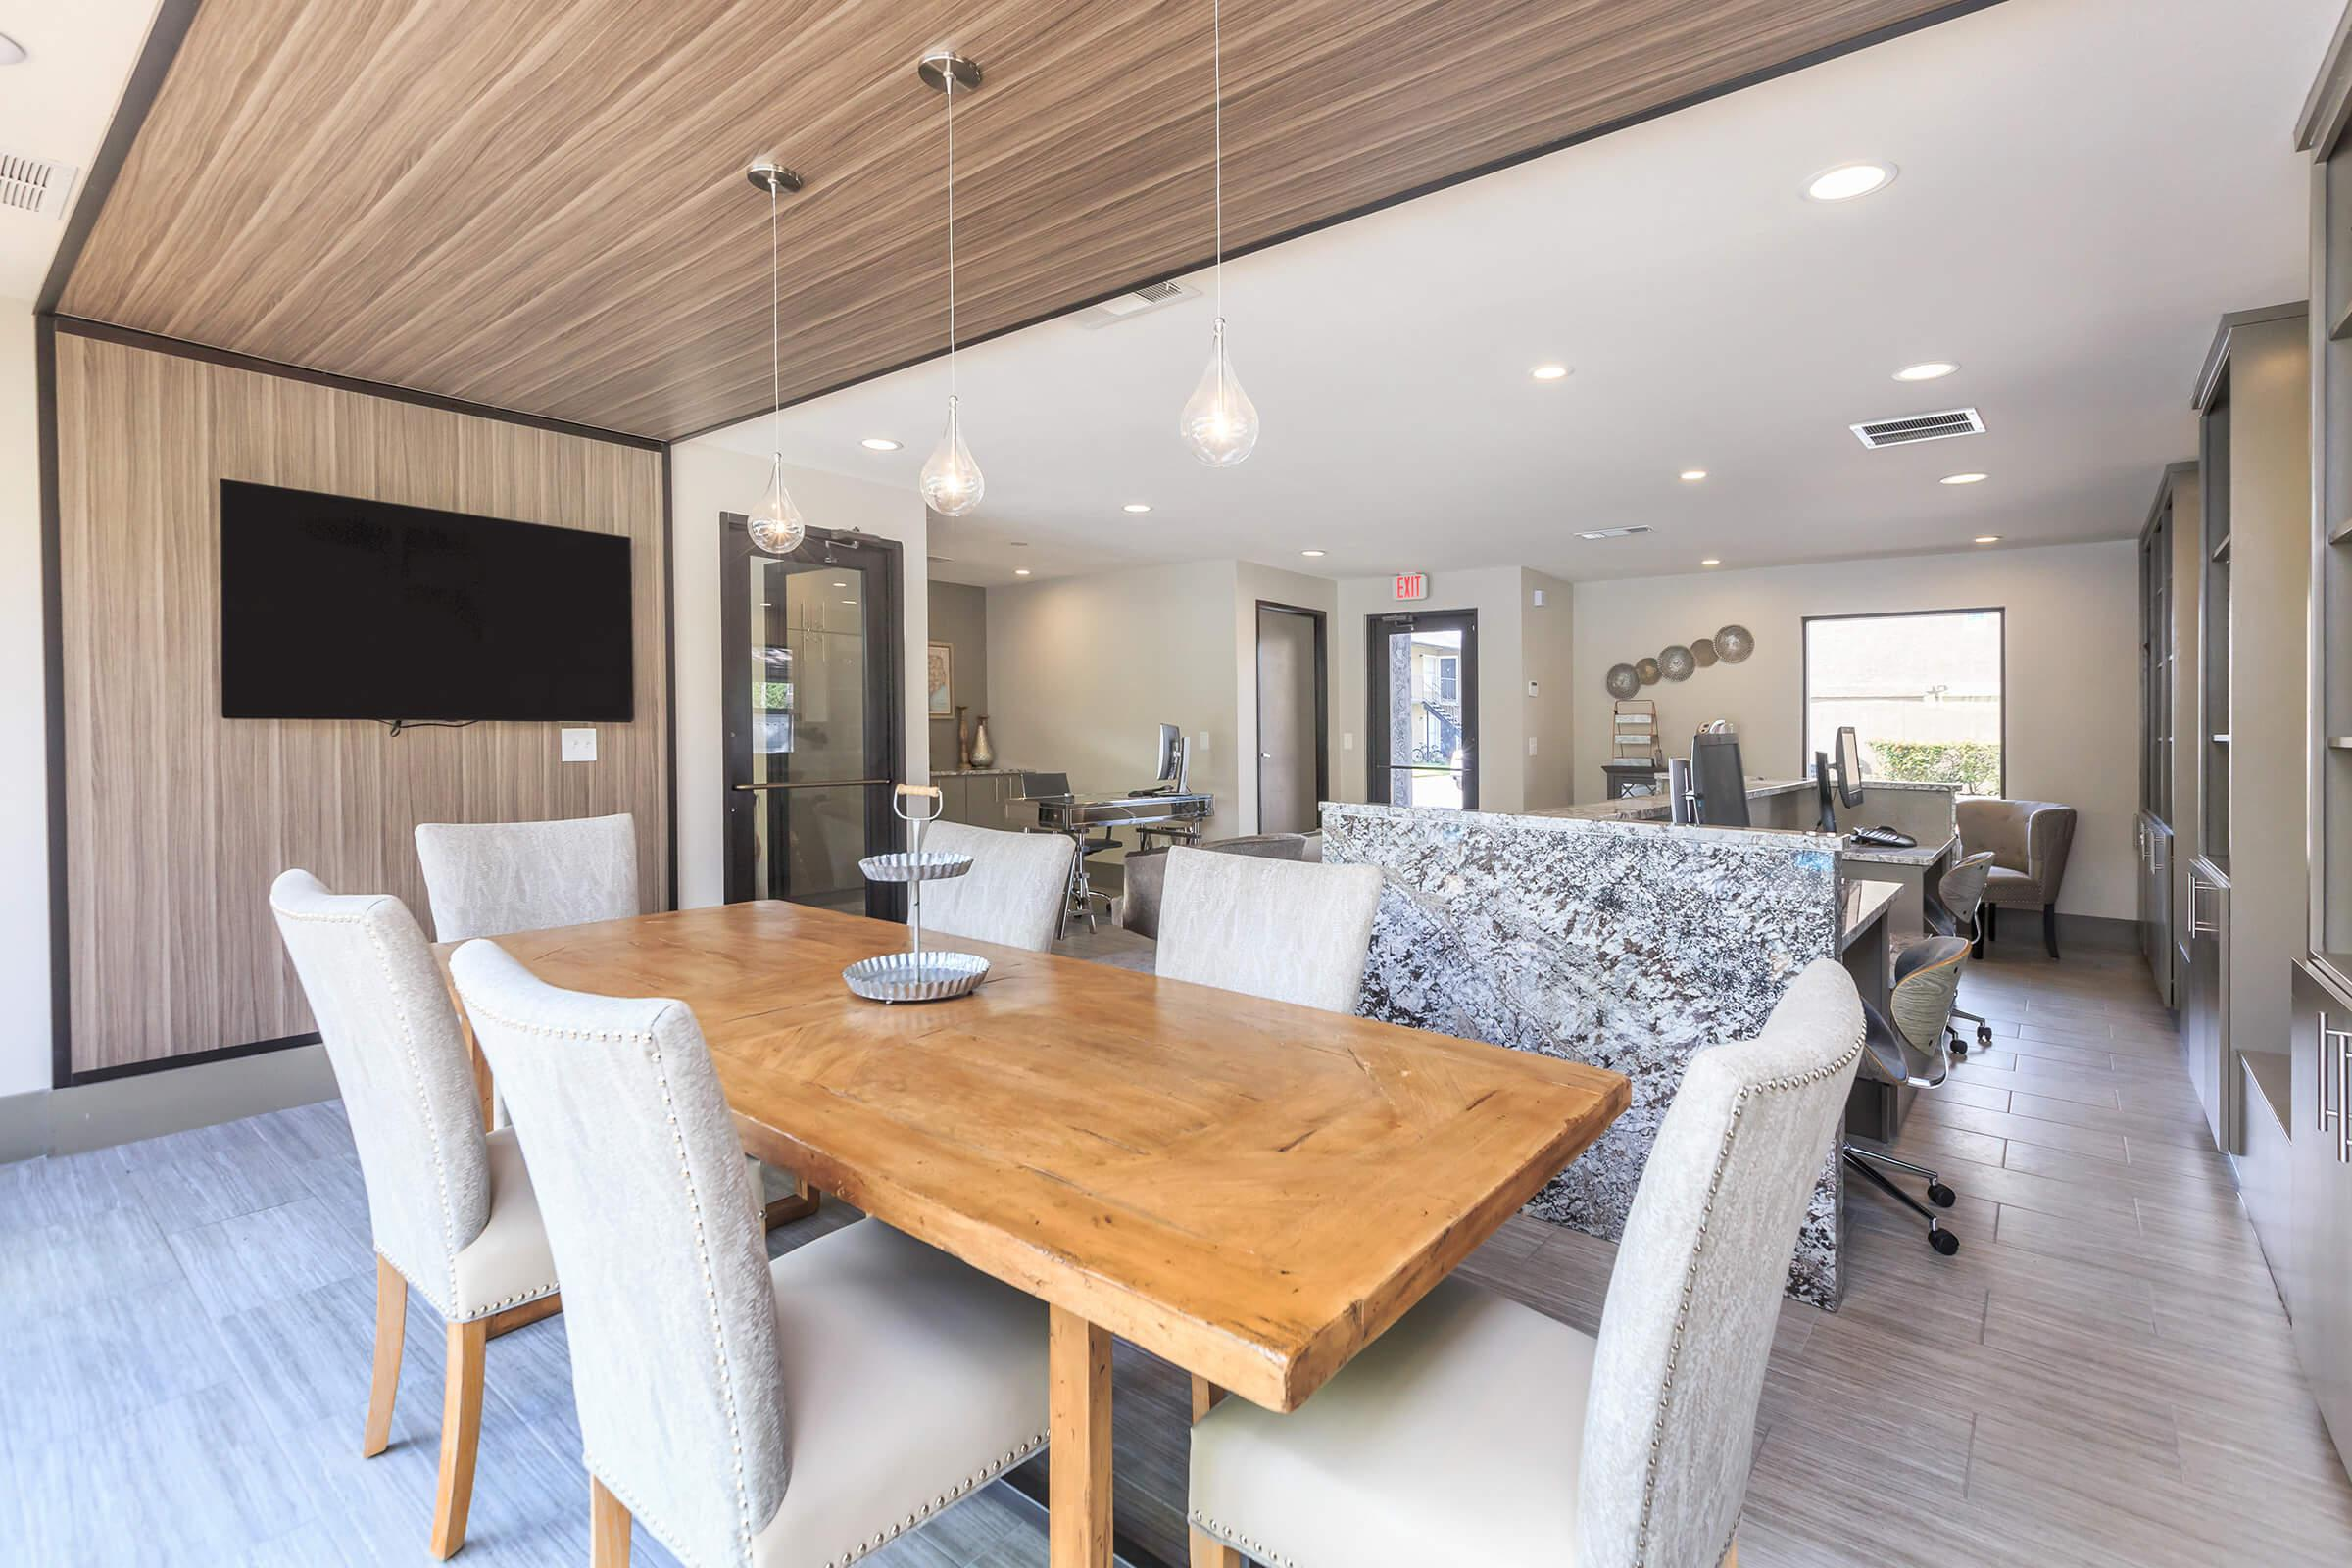 WELCOME HOME TO LANGTRY VILLAGE